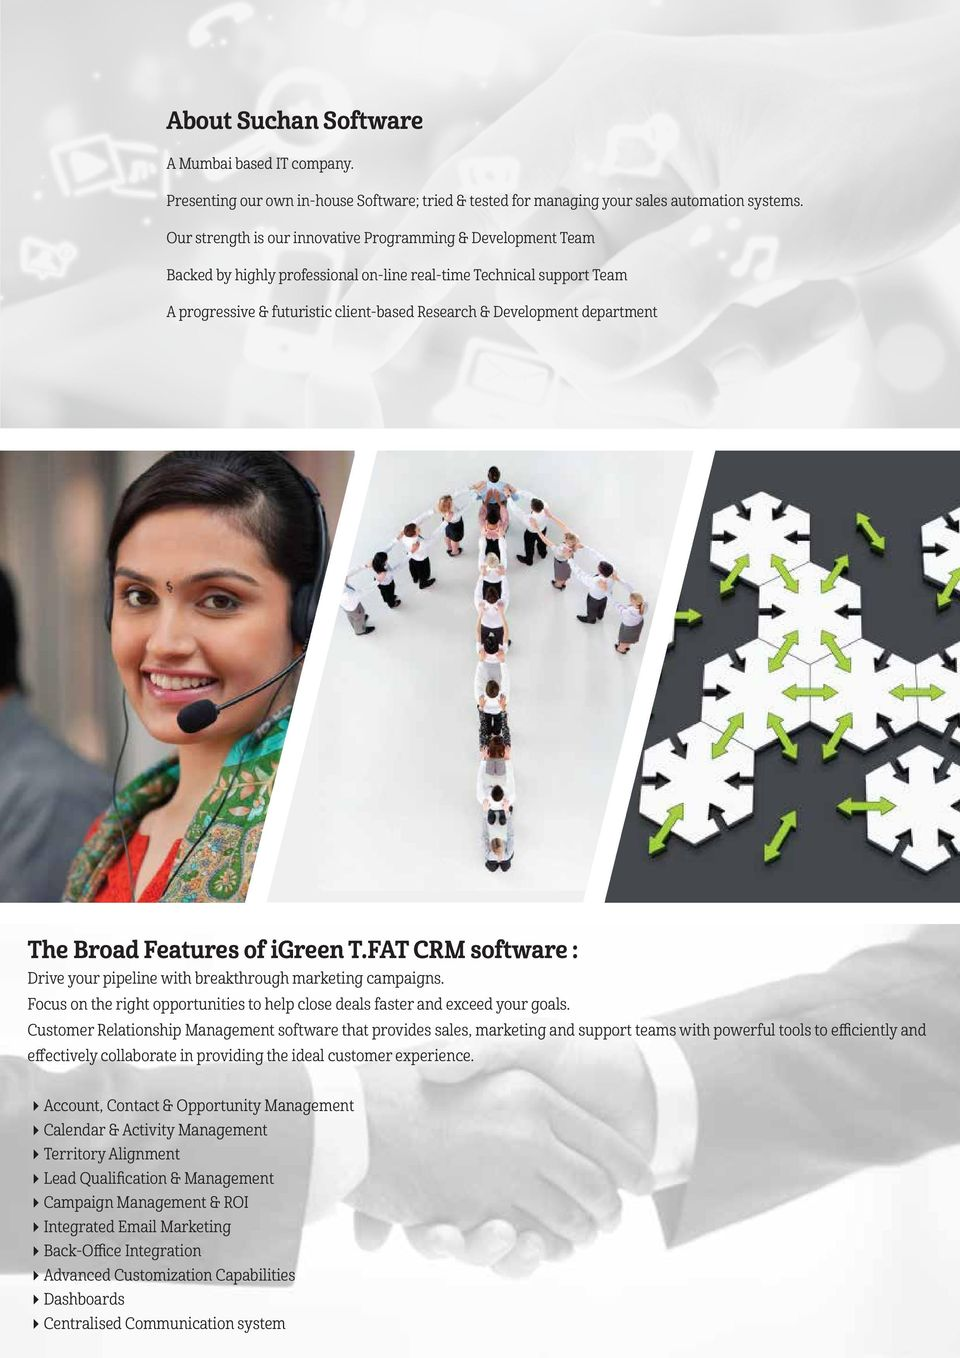 department The Broad Features of igreen T.FAT CRM software : Drive your pipeline with breakthrough marketing campaigns.